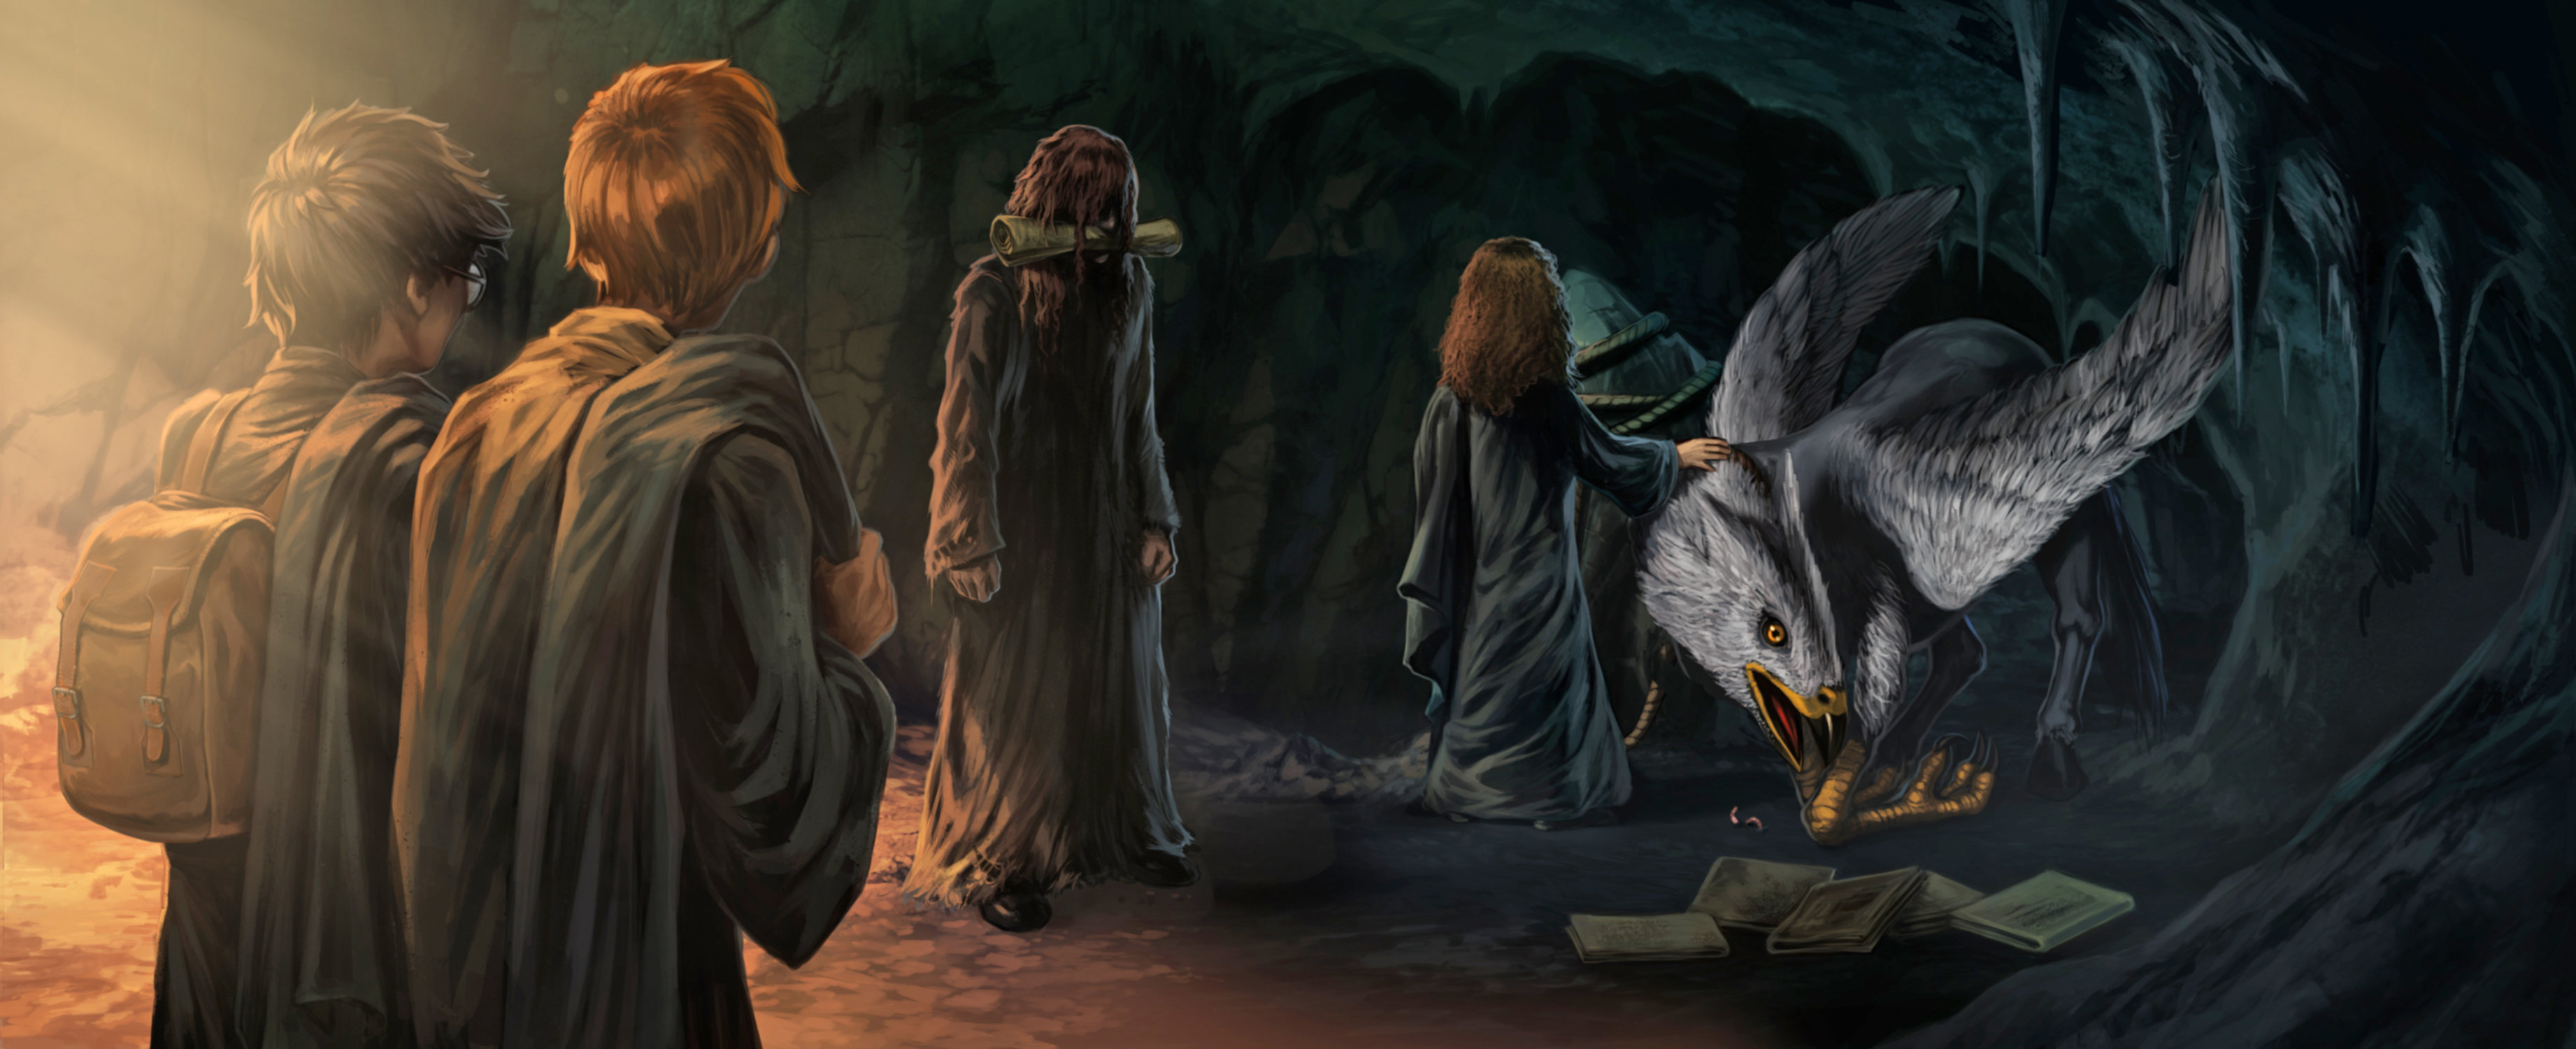 Sirius with Buckbeak Harry Ron and Hermione in the cave